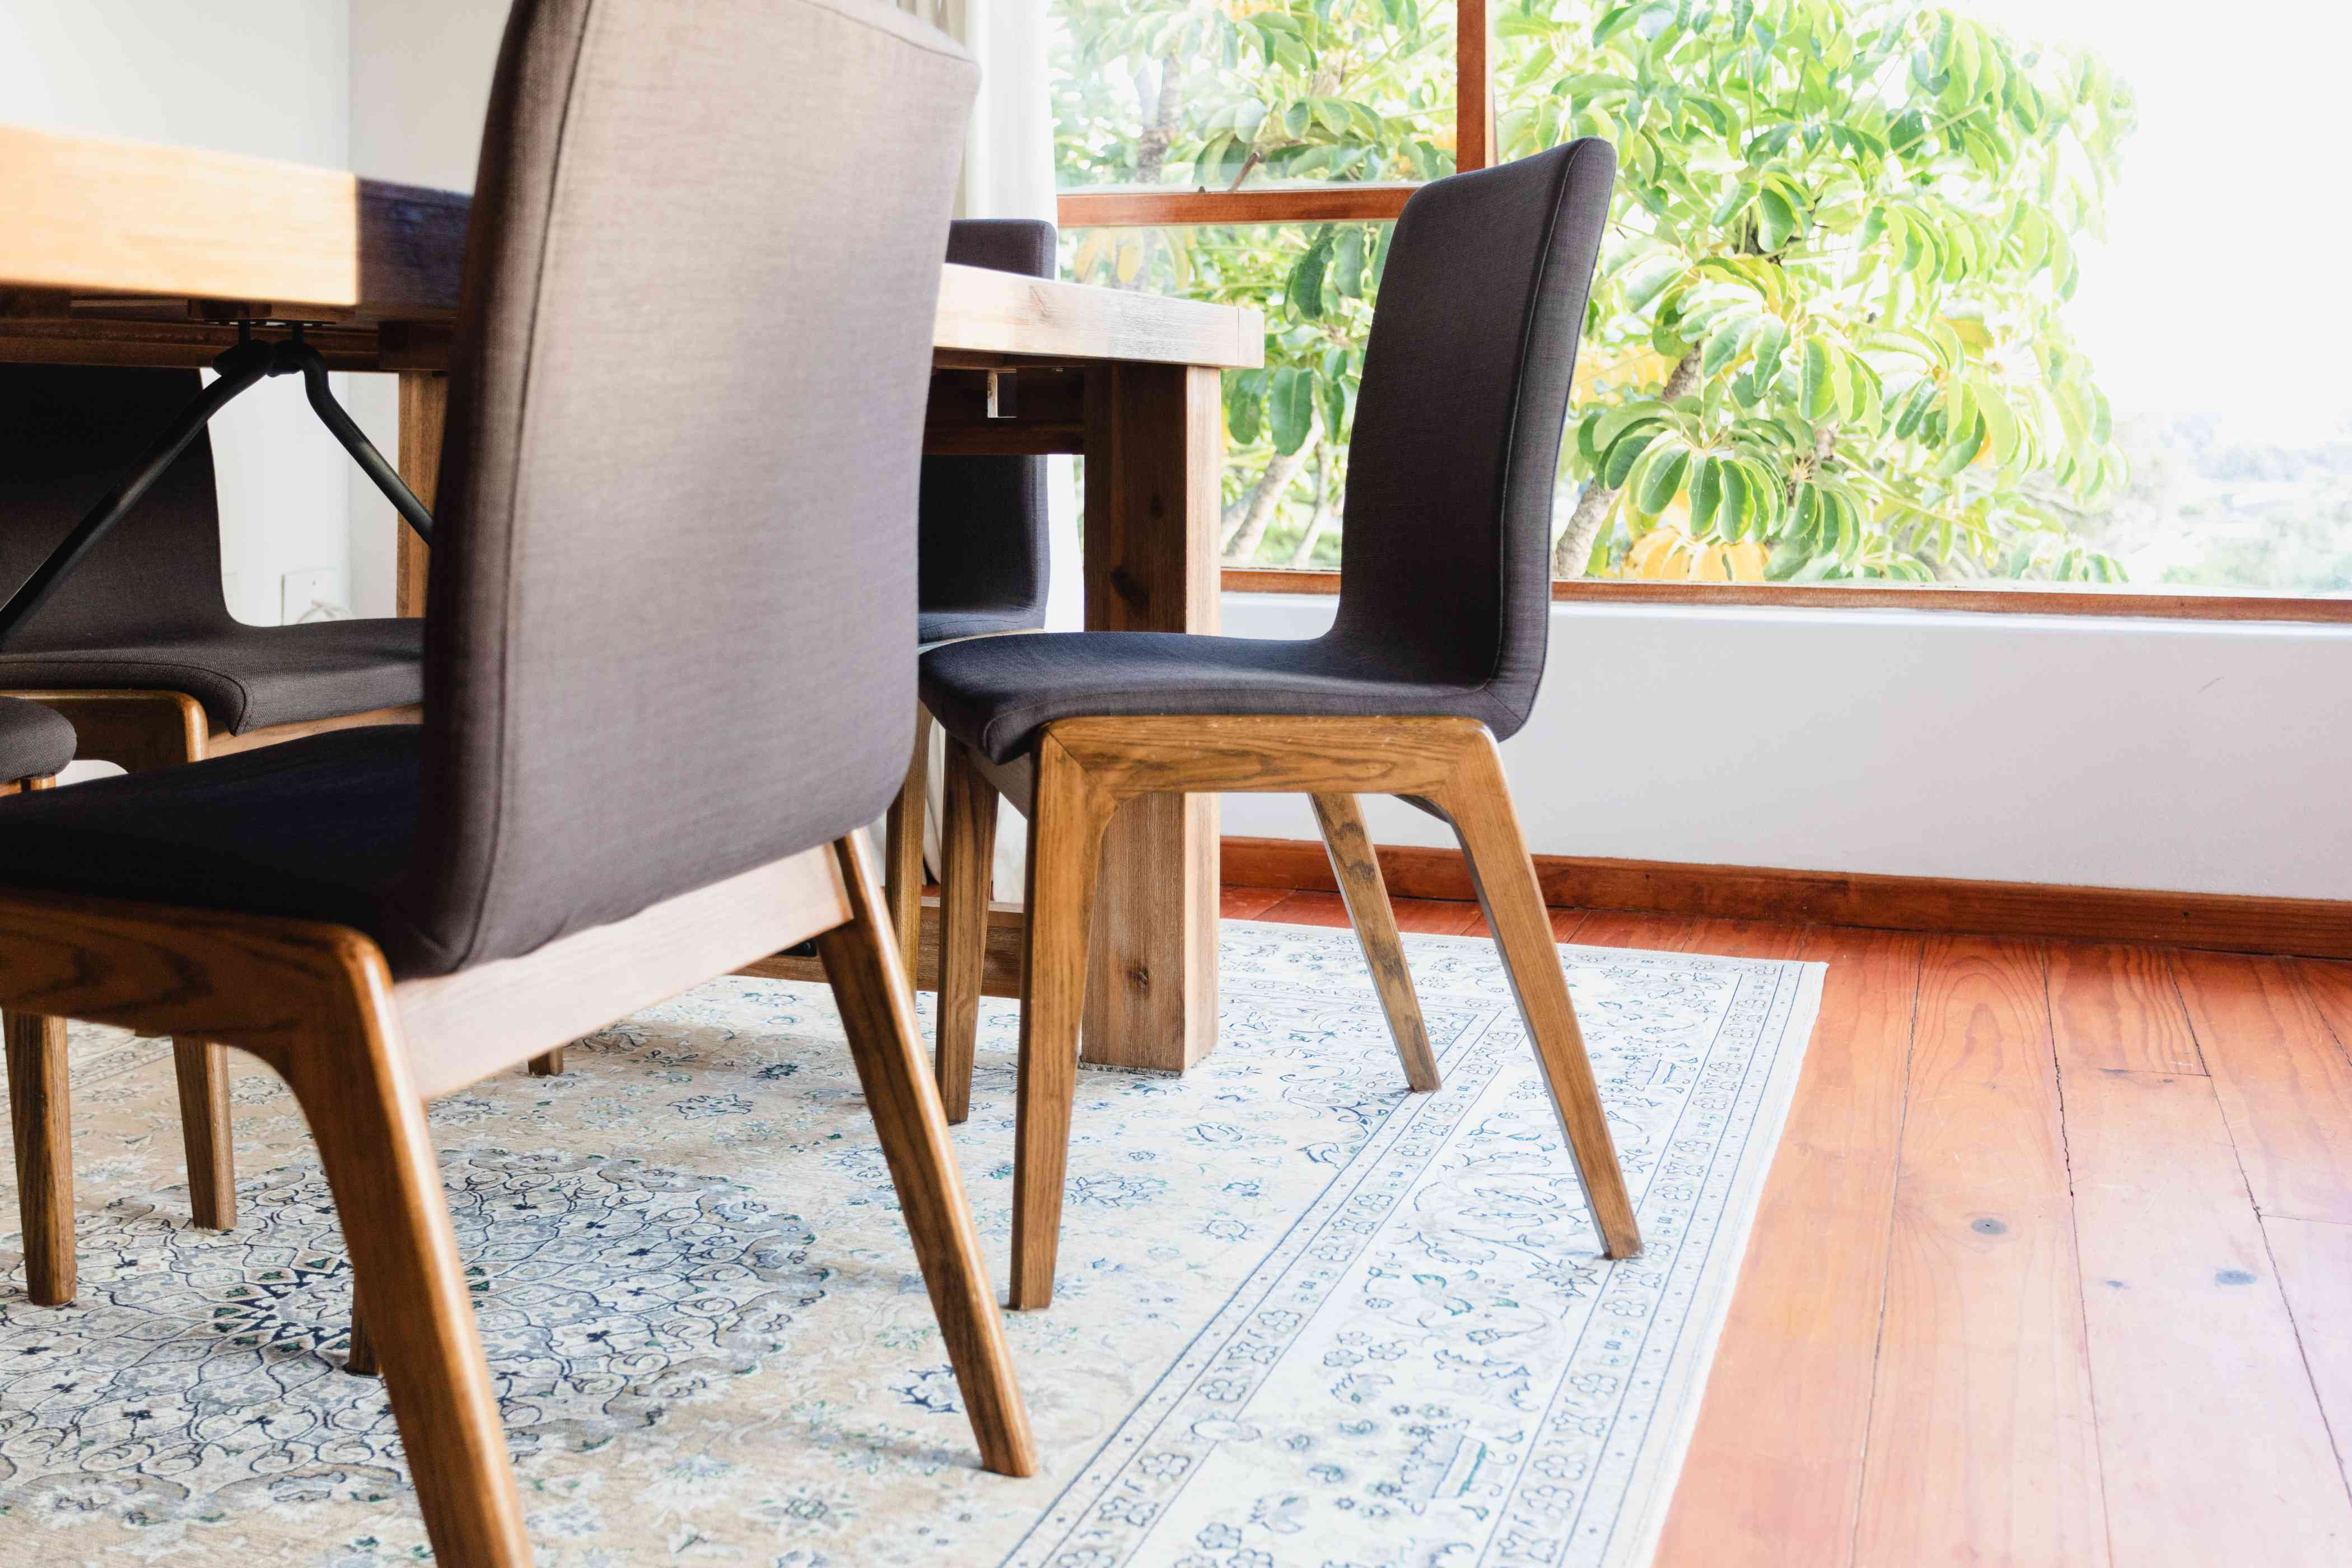 Light colored rug under dining room table with dining chairs pulled out